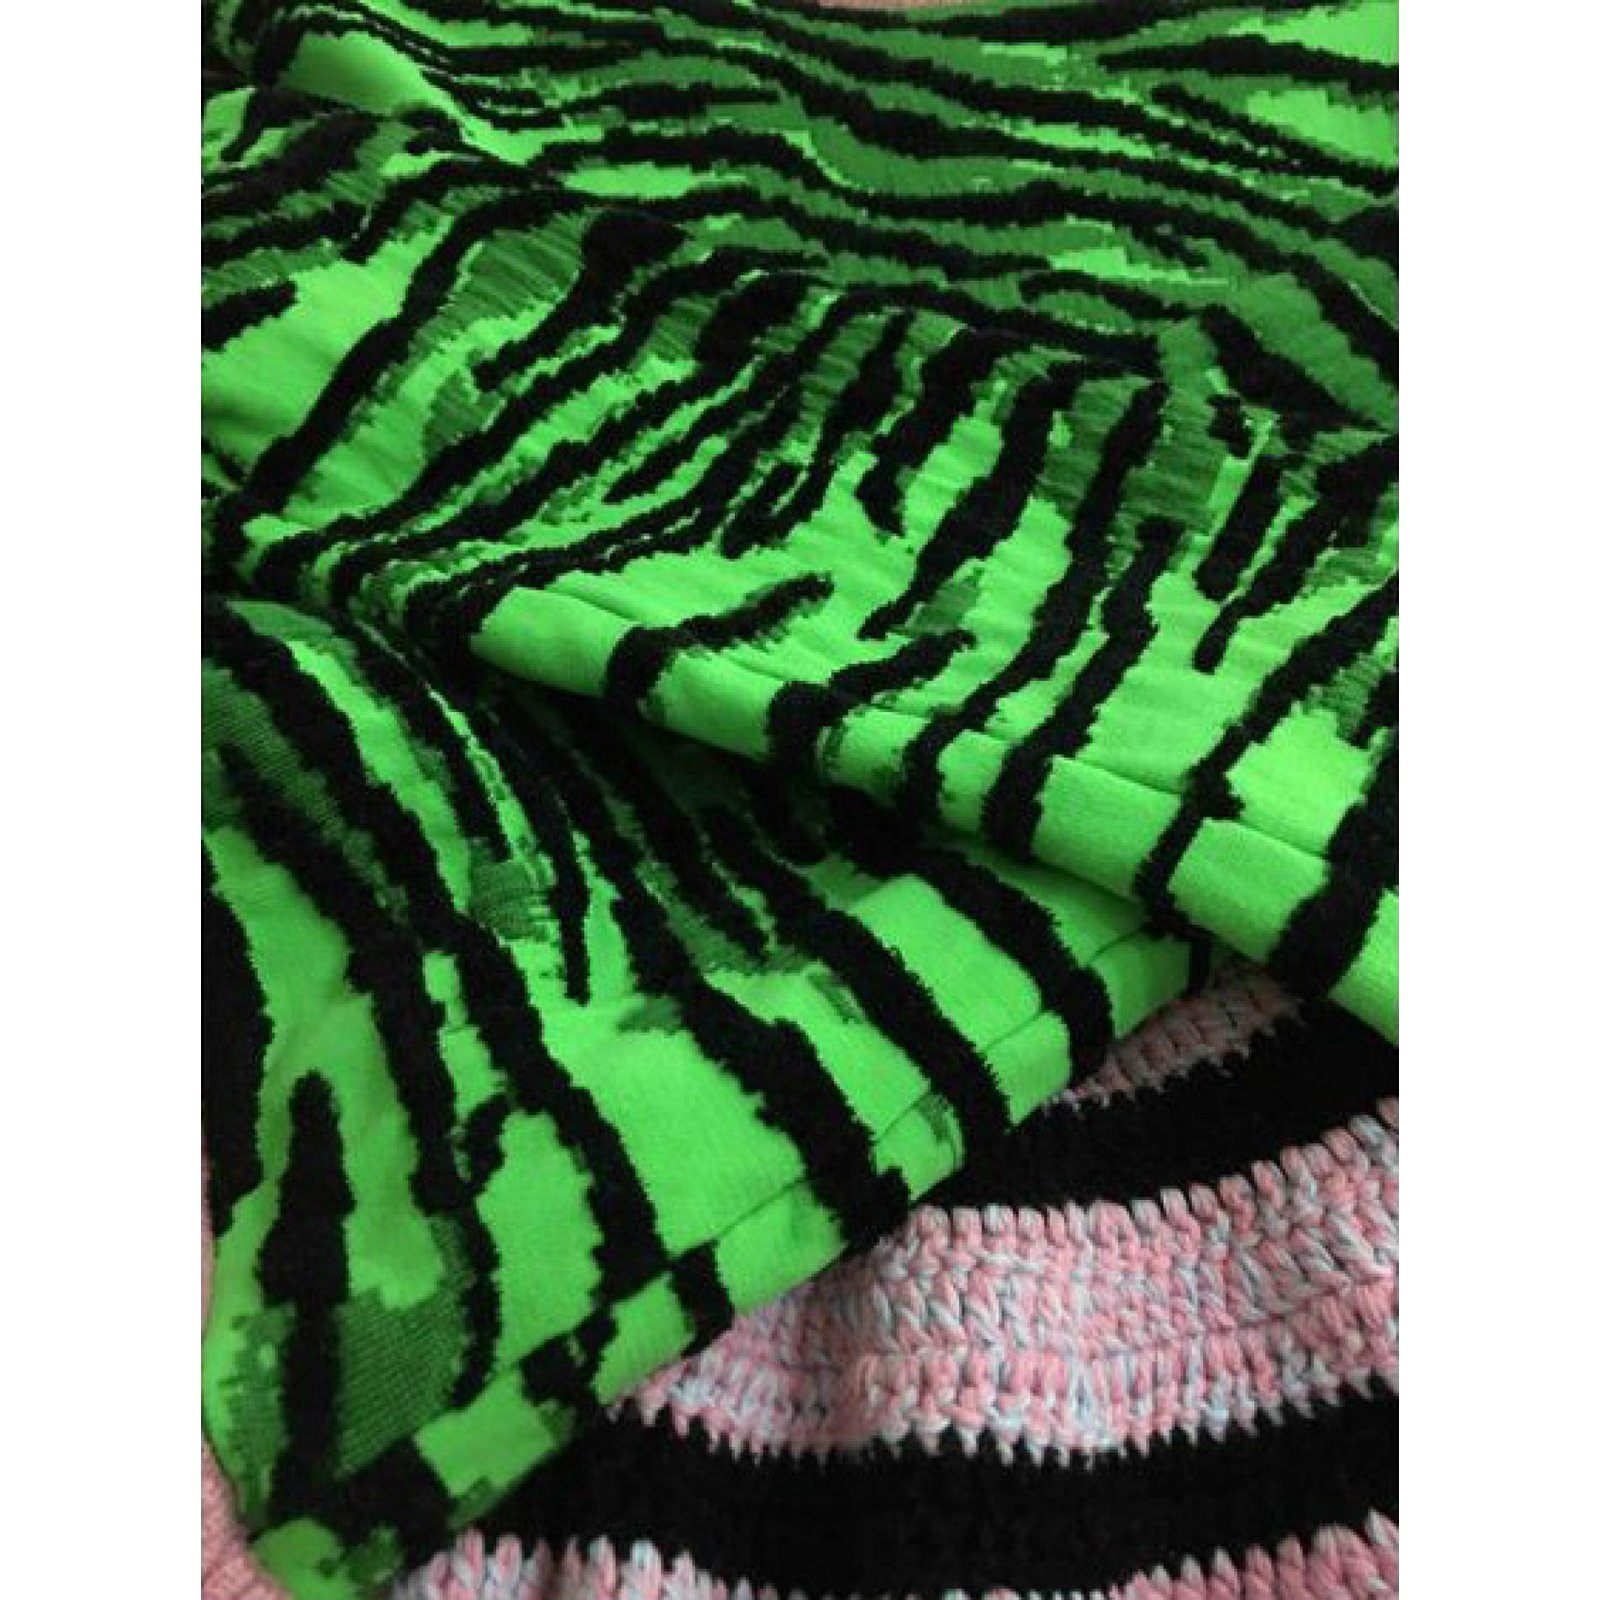 b41e6c25d Kenzo Knitwear Knitwear Other Multiple colors ref.39151 - Joli Closet